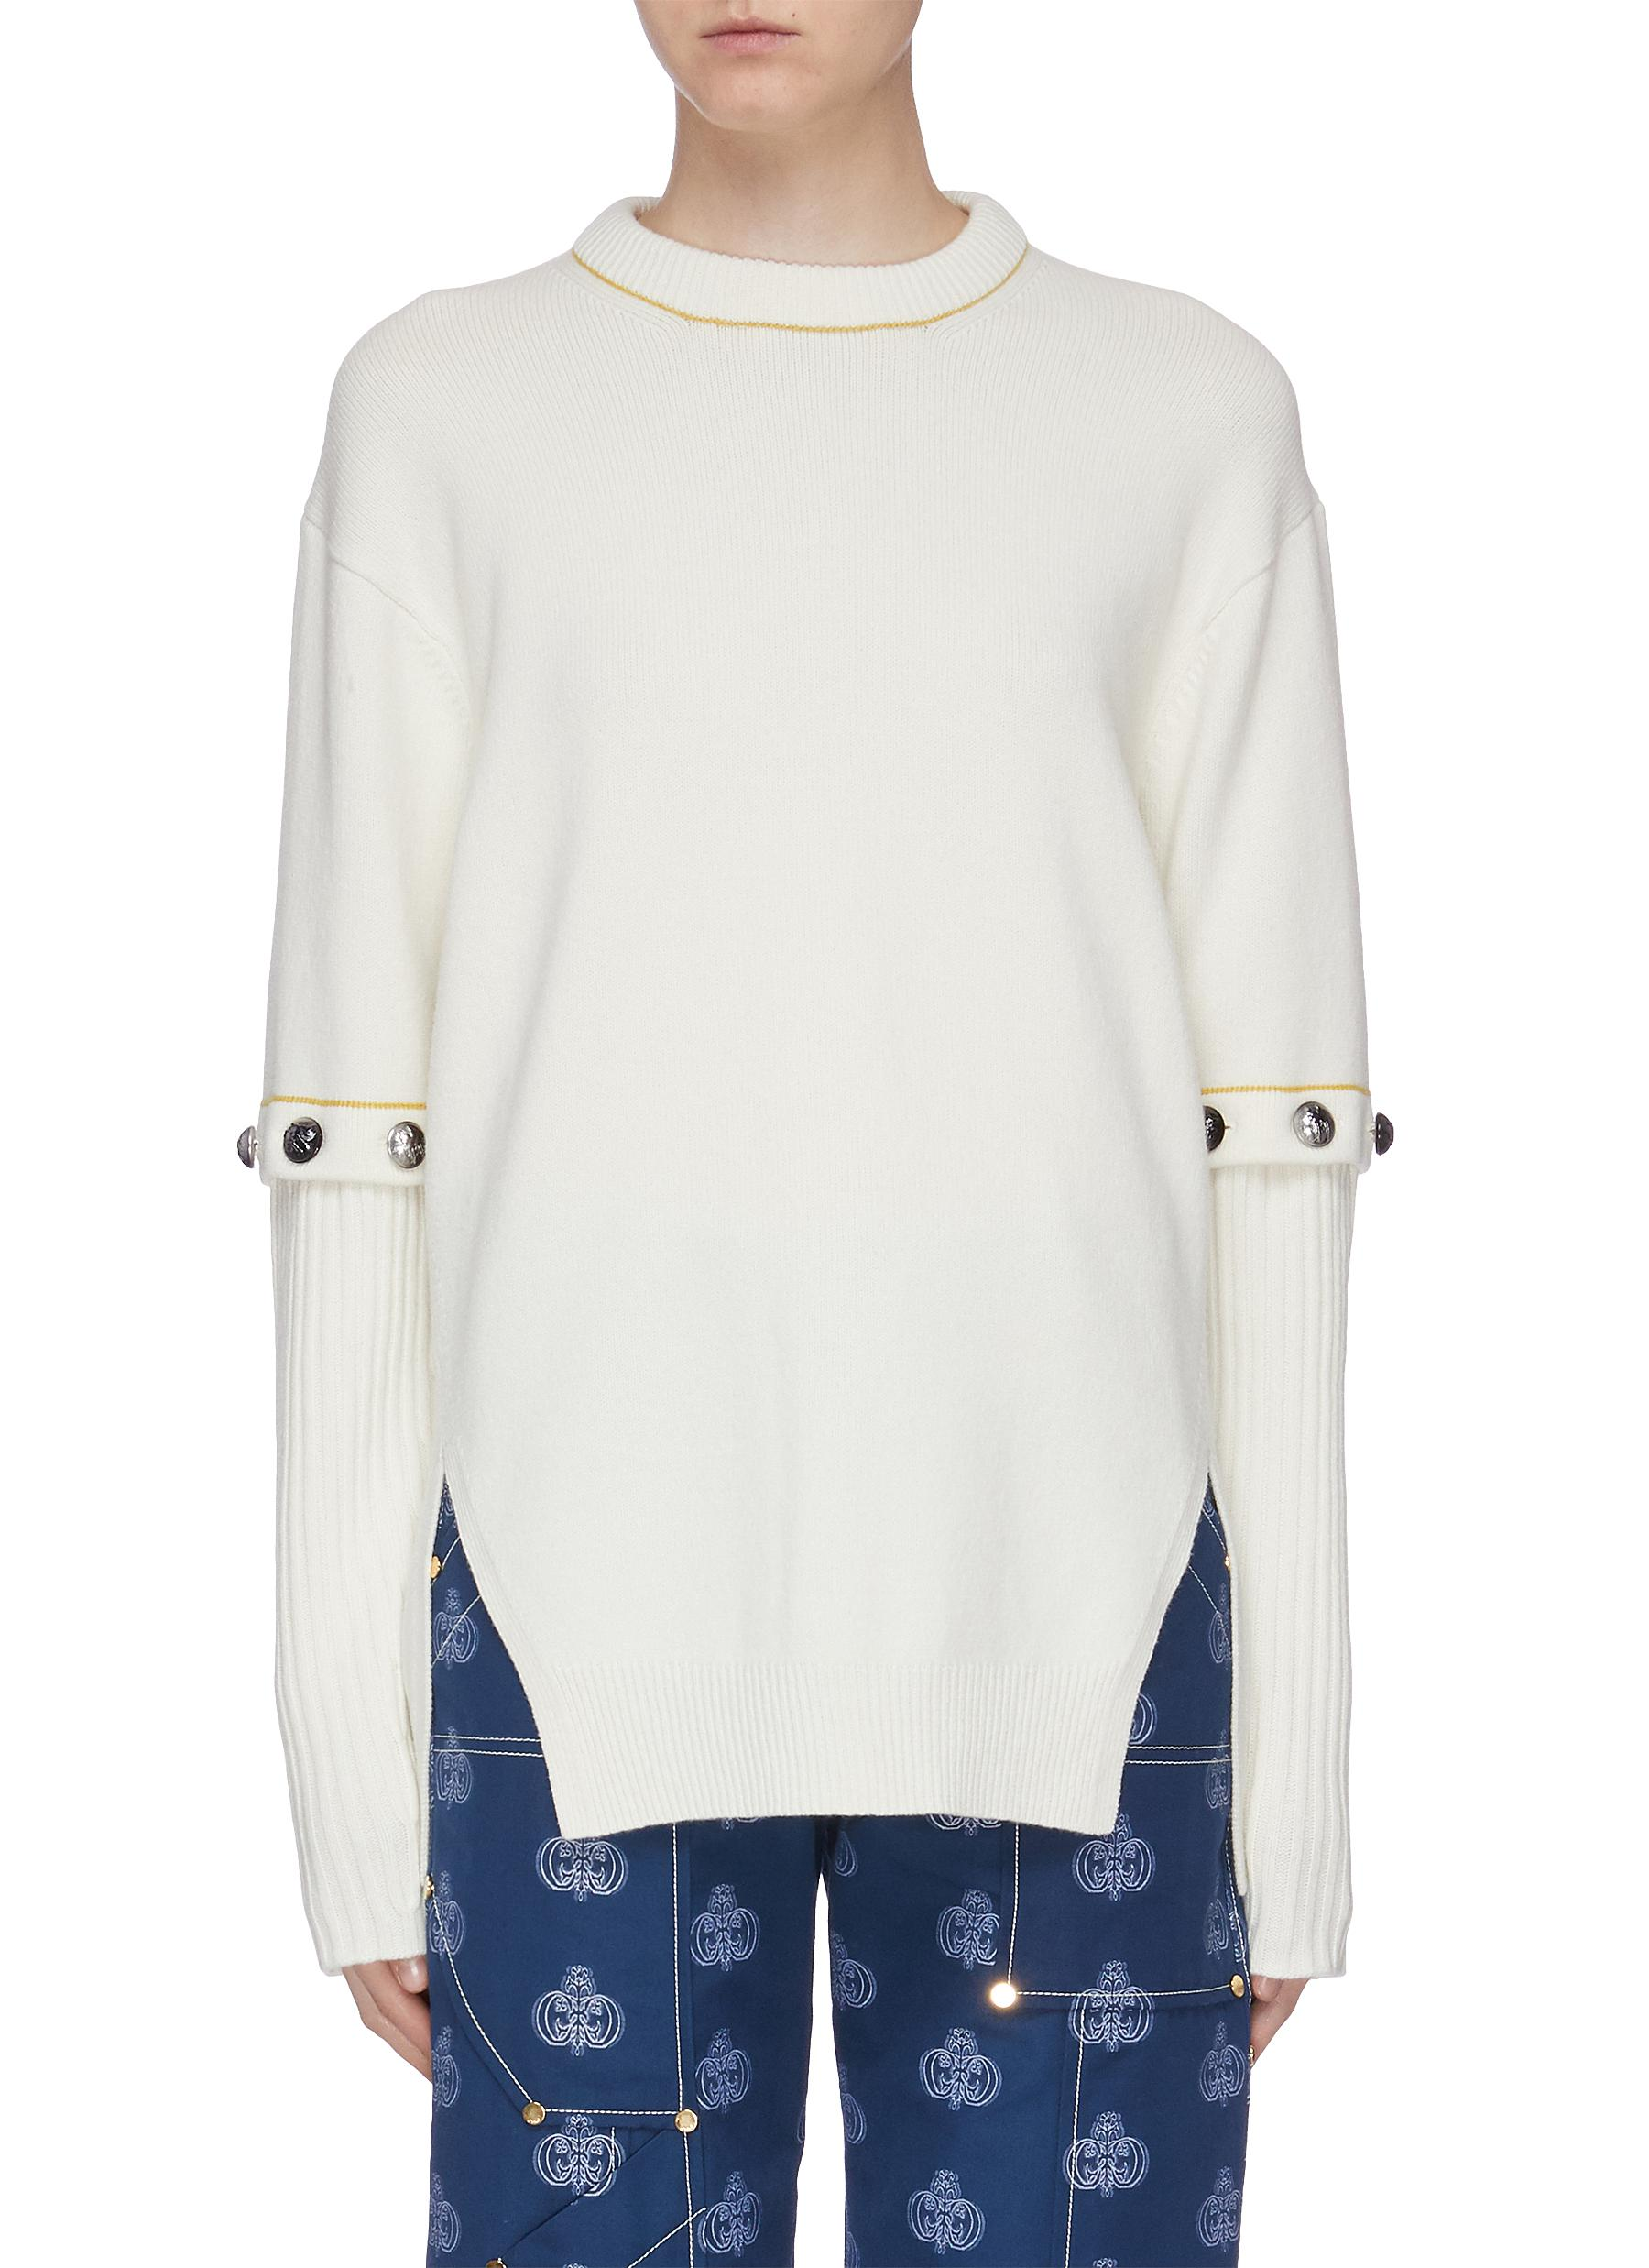 Detachable button sleeve sweater by Chloé